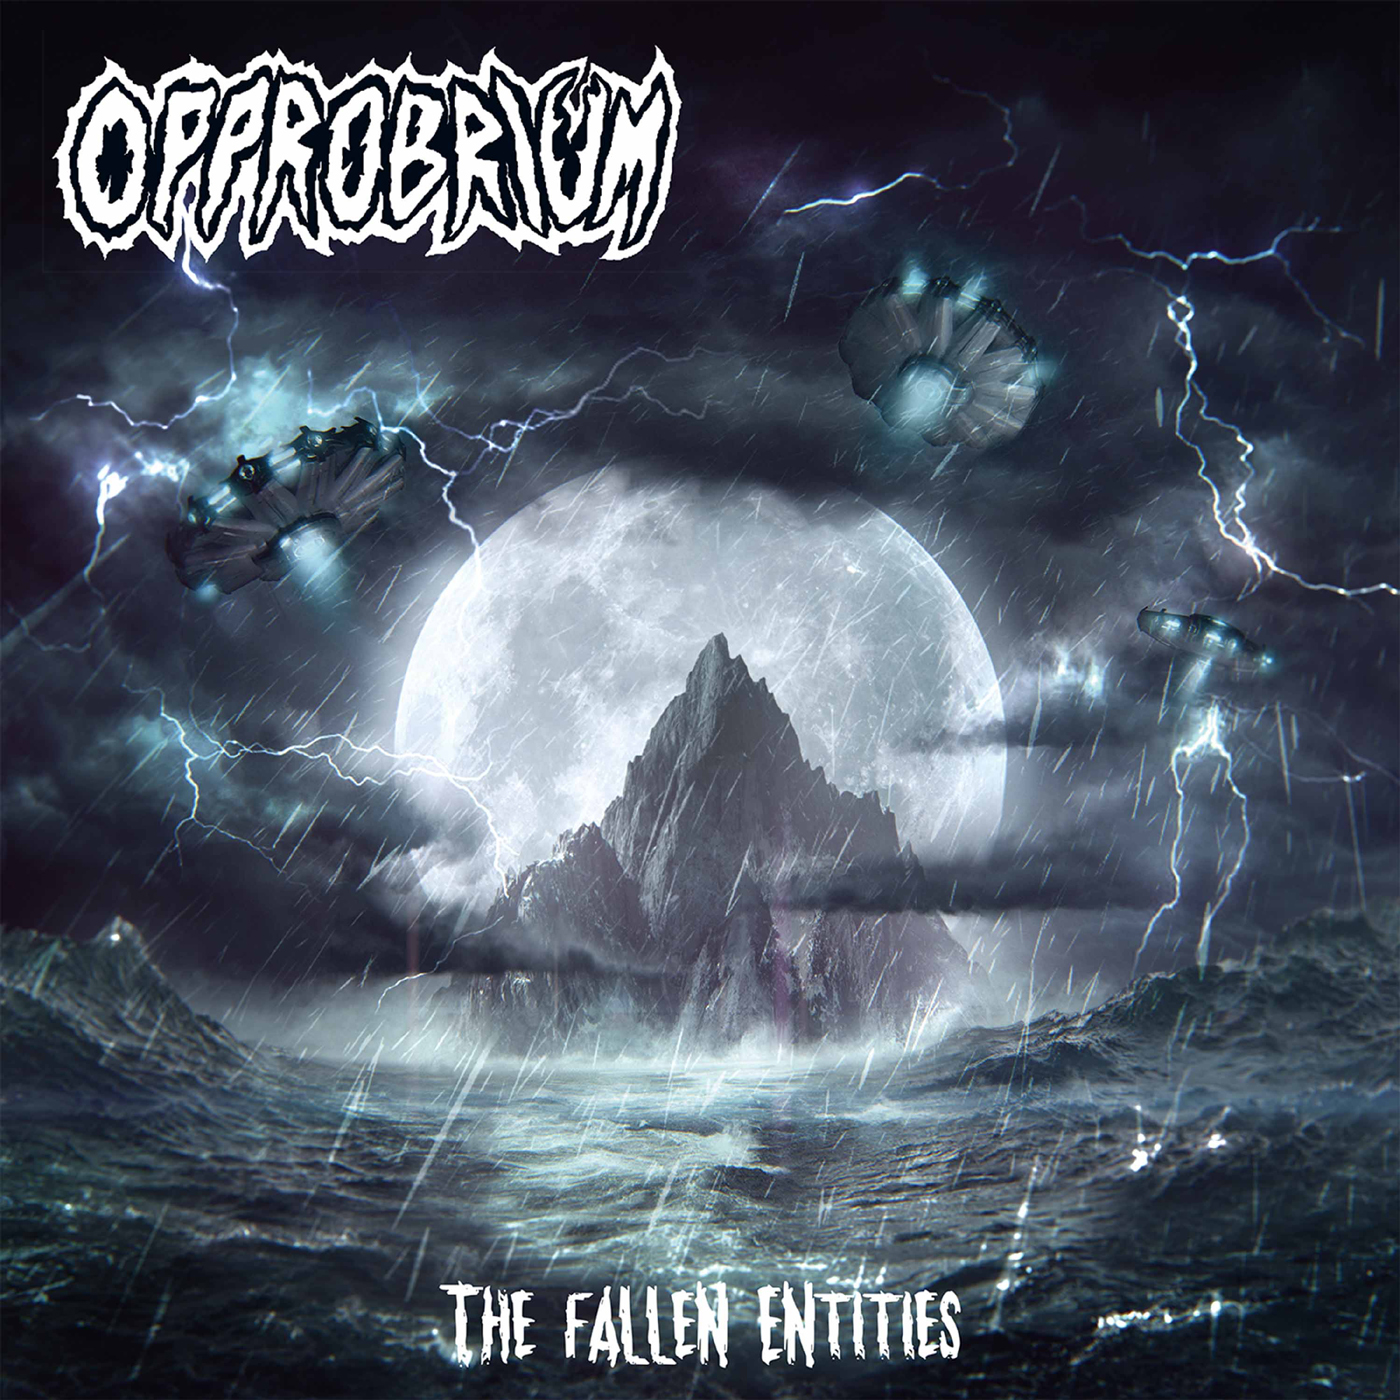 opprobrium-the-fallen-entities-ein-album-review